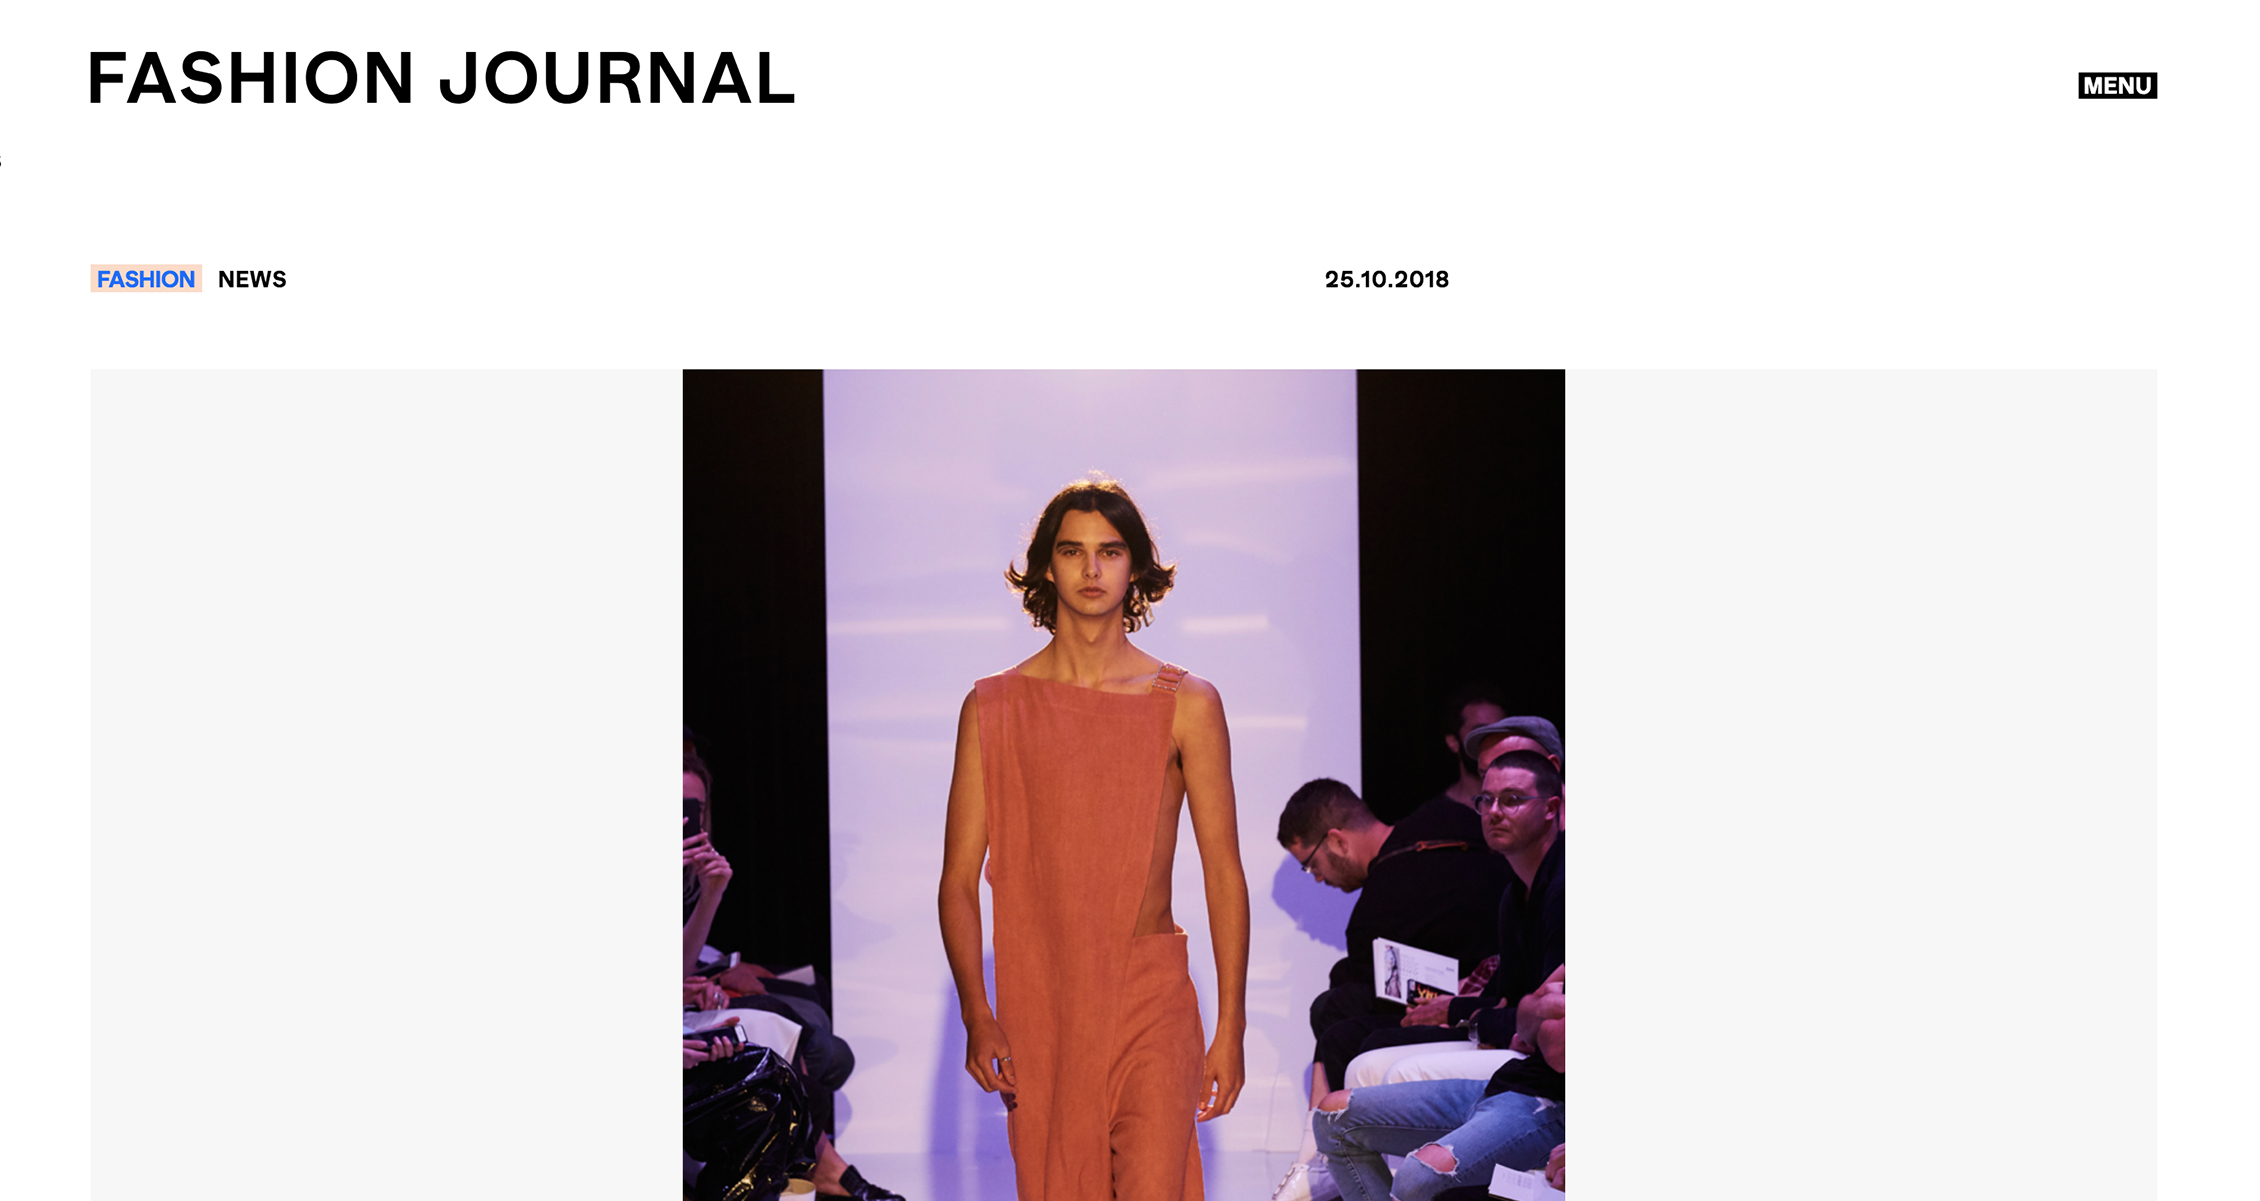 fashion journal 1.jpg